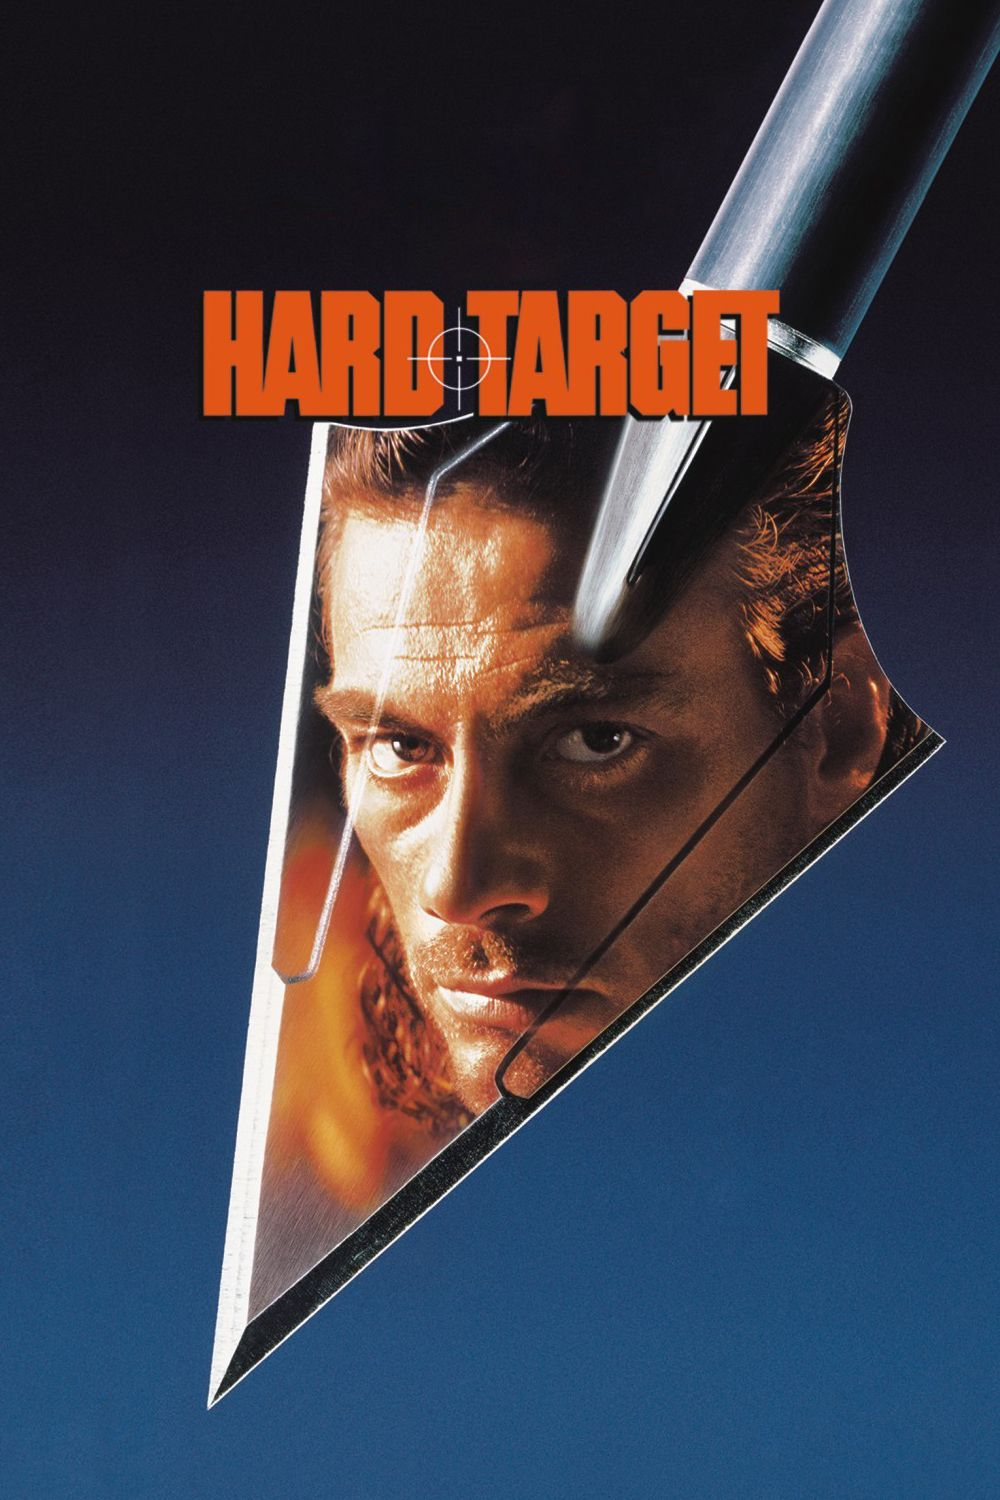 click image to watch Hard Target (1993) Full movies